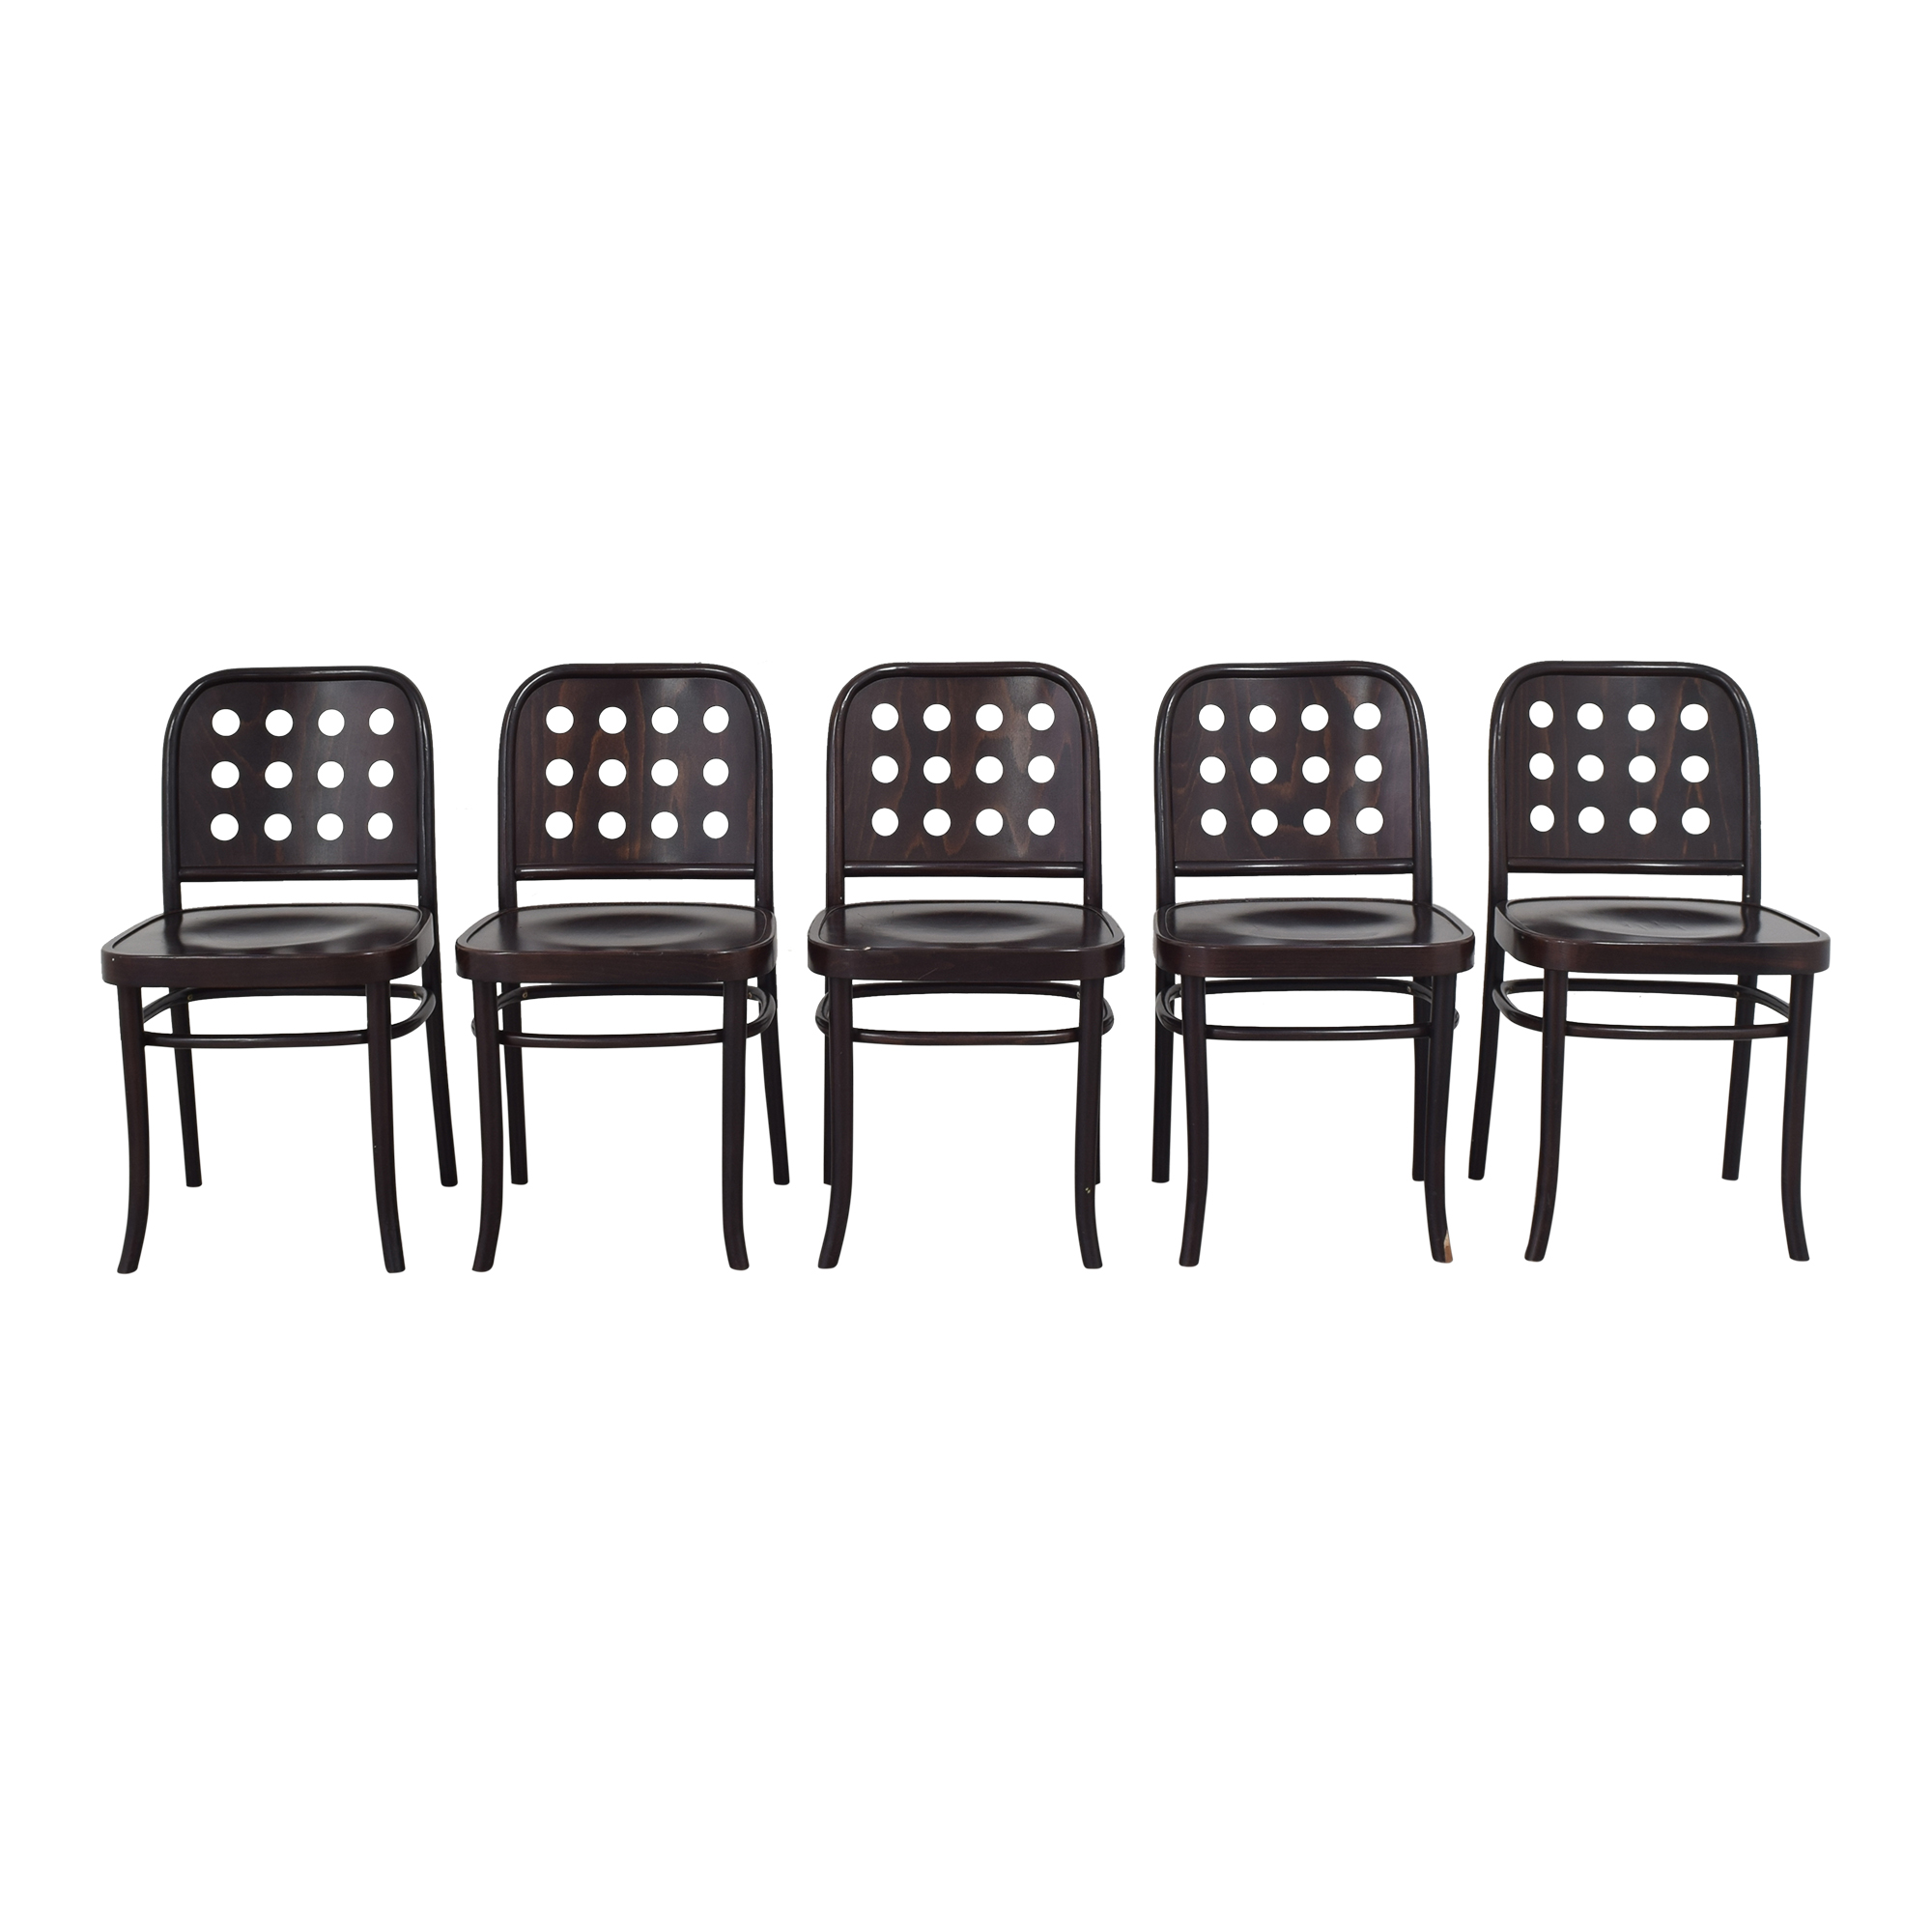 Bauhaus2YourHouse Bauhaus2YourHouse Bentwood-Style Chairs used